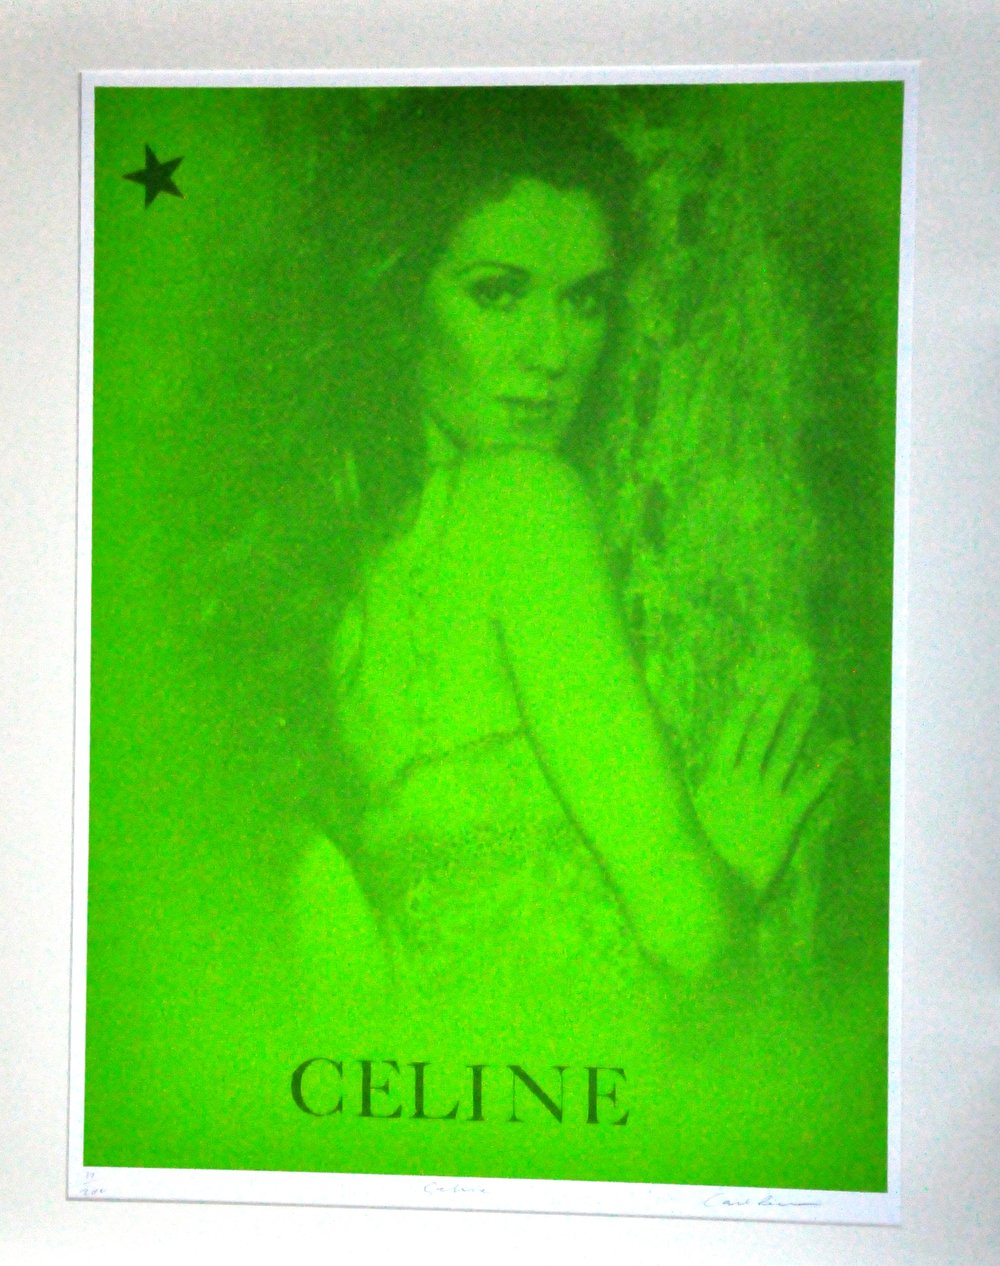 "Celine,  2000, Carl Beam, serigraph on paper, edition 17/200, 30"" x 22"", 2006.05.02, gift of the Milton Winberg Foundation"